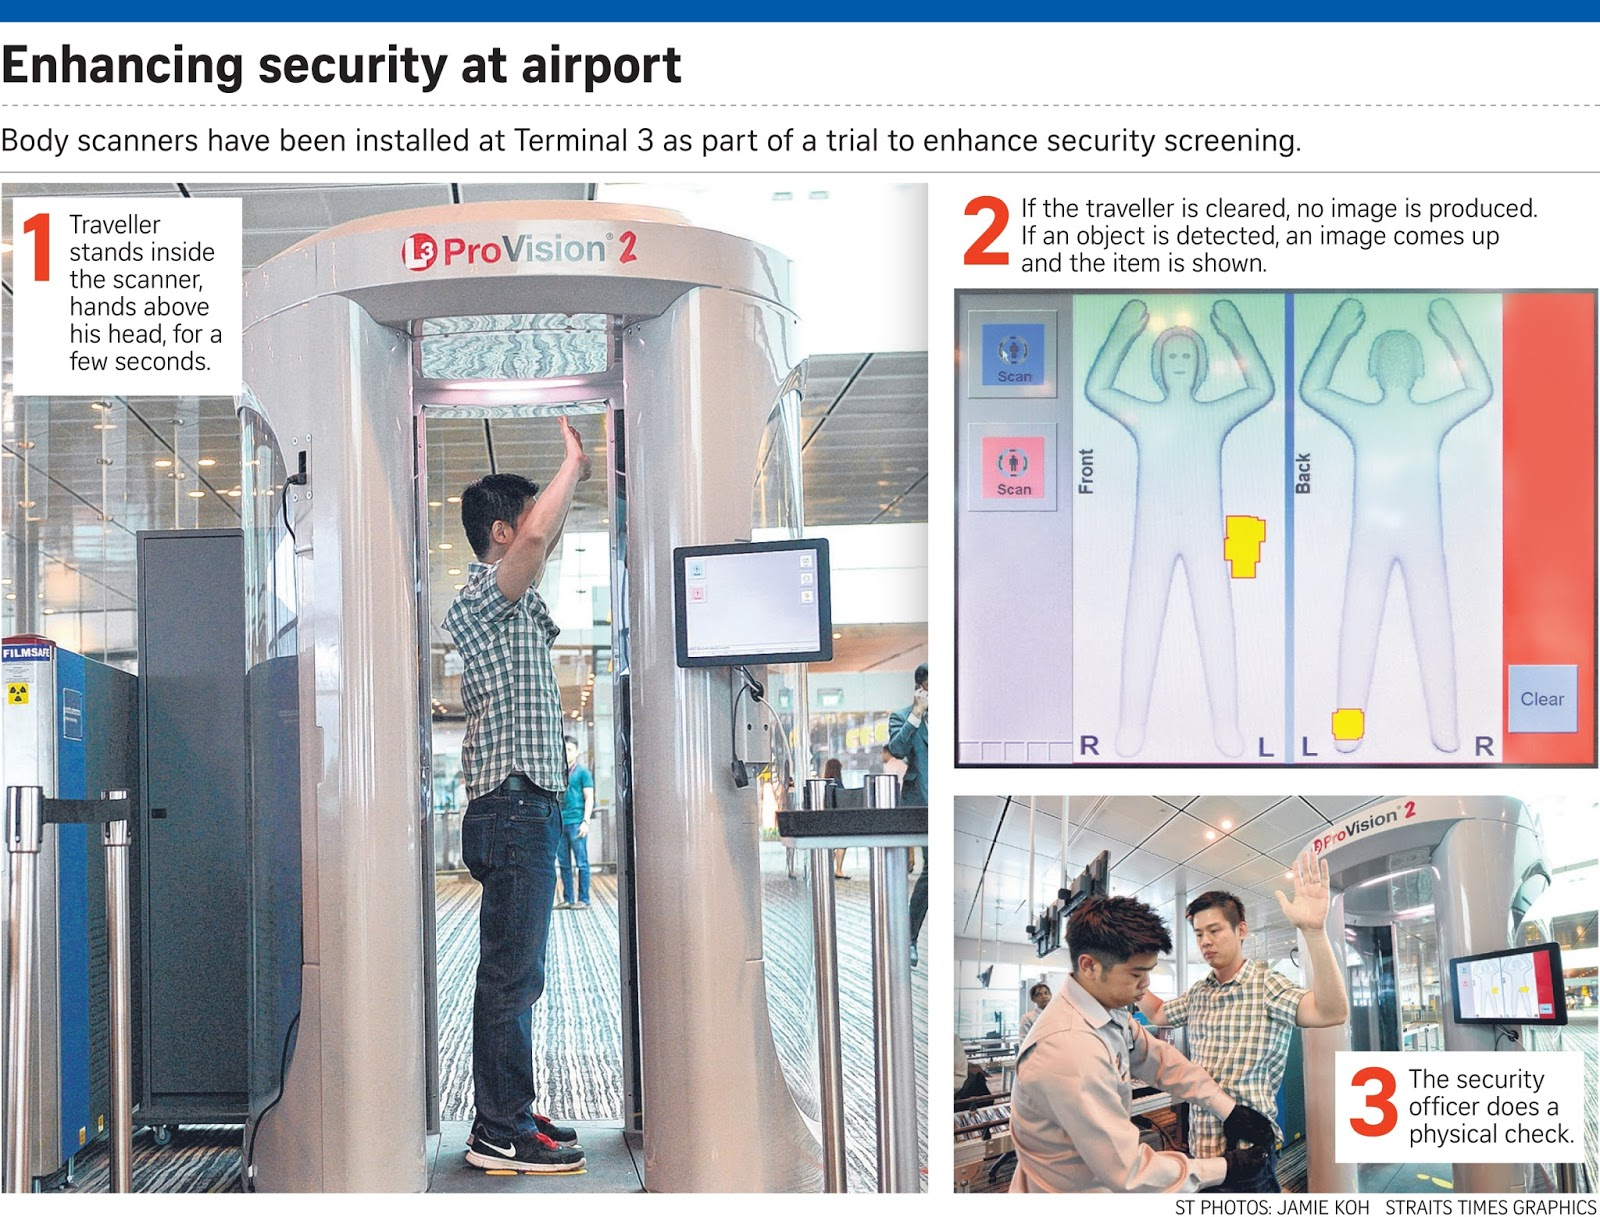 essay on airport body scanners Full body scanners in airports essay full body scanners in airports a full body scanner that is a device that is able to detect objects hidden under clothing by constructing a full 3-d image of a person, complete with detailed body contours.